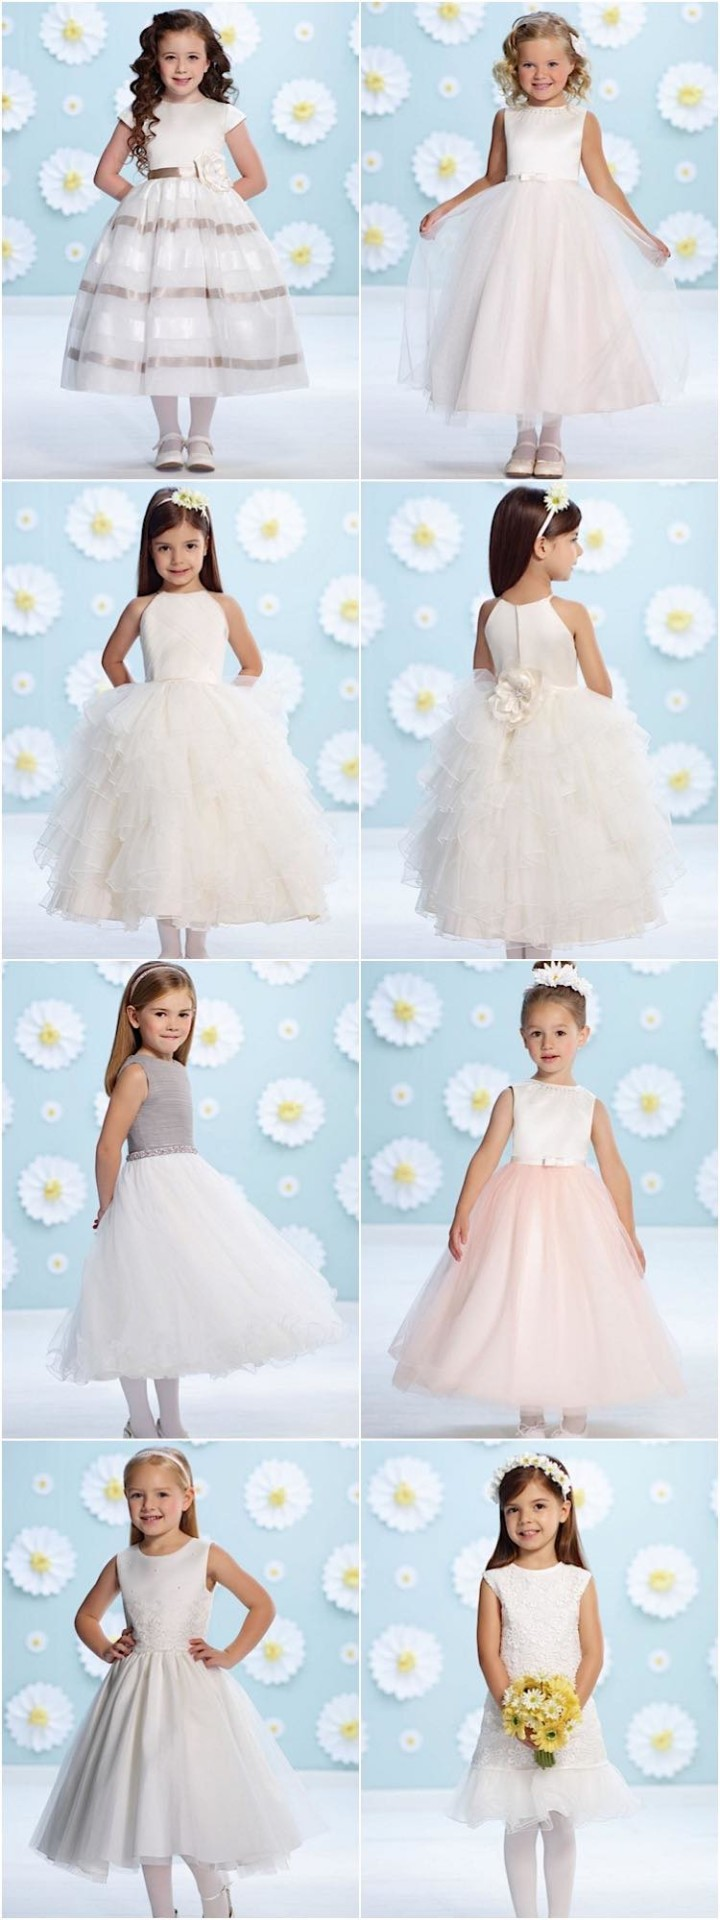 Joan-Calabrese-Flower-Girl-dresses-collage2-02062016